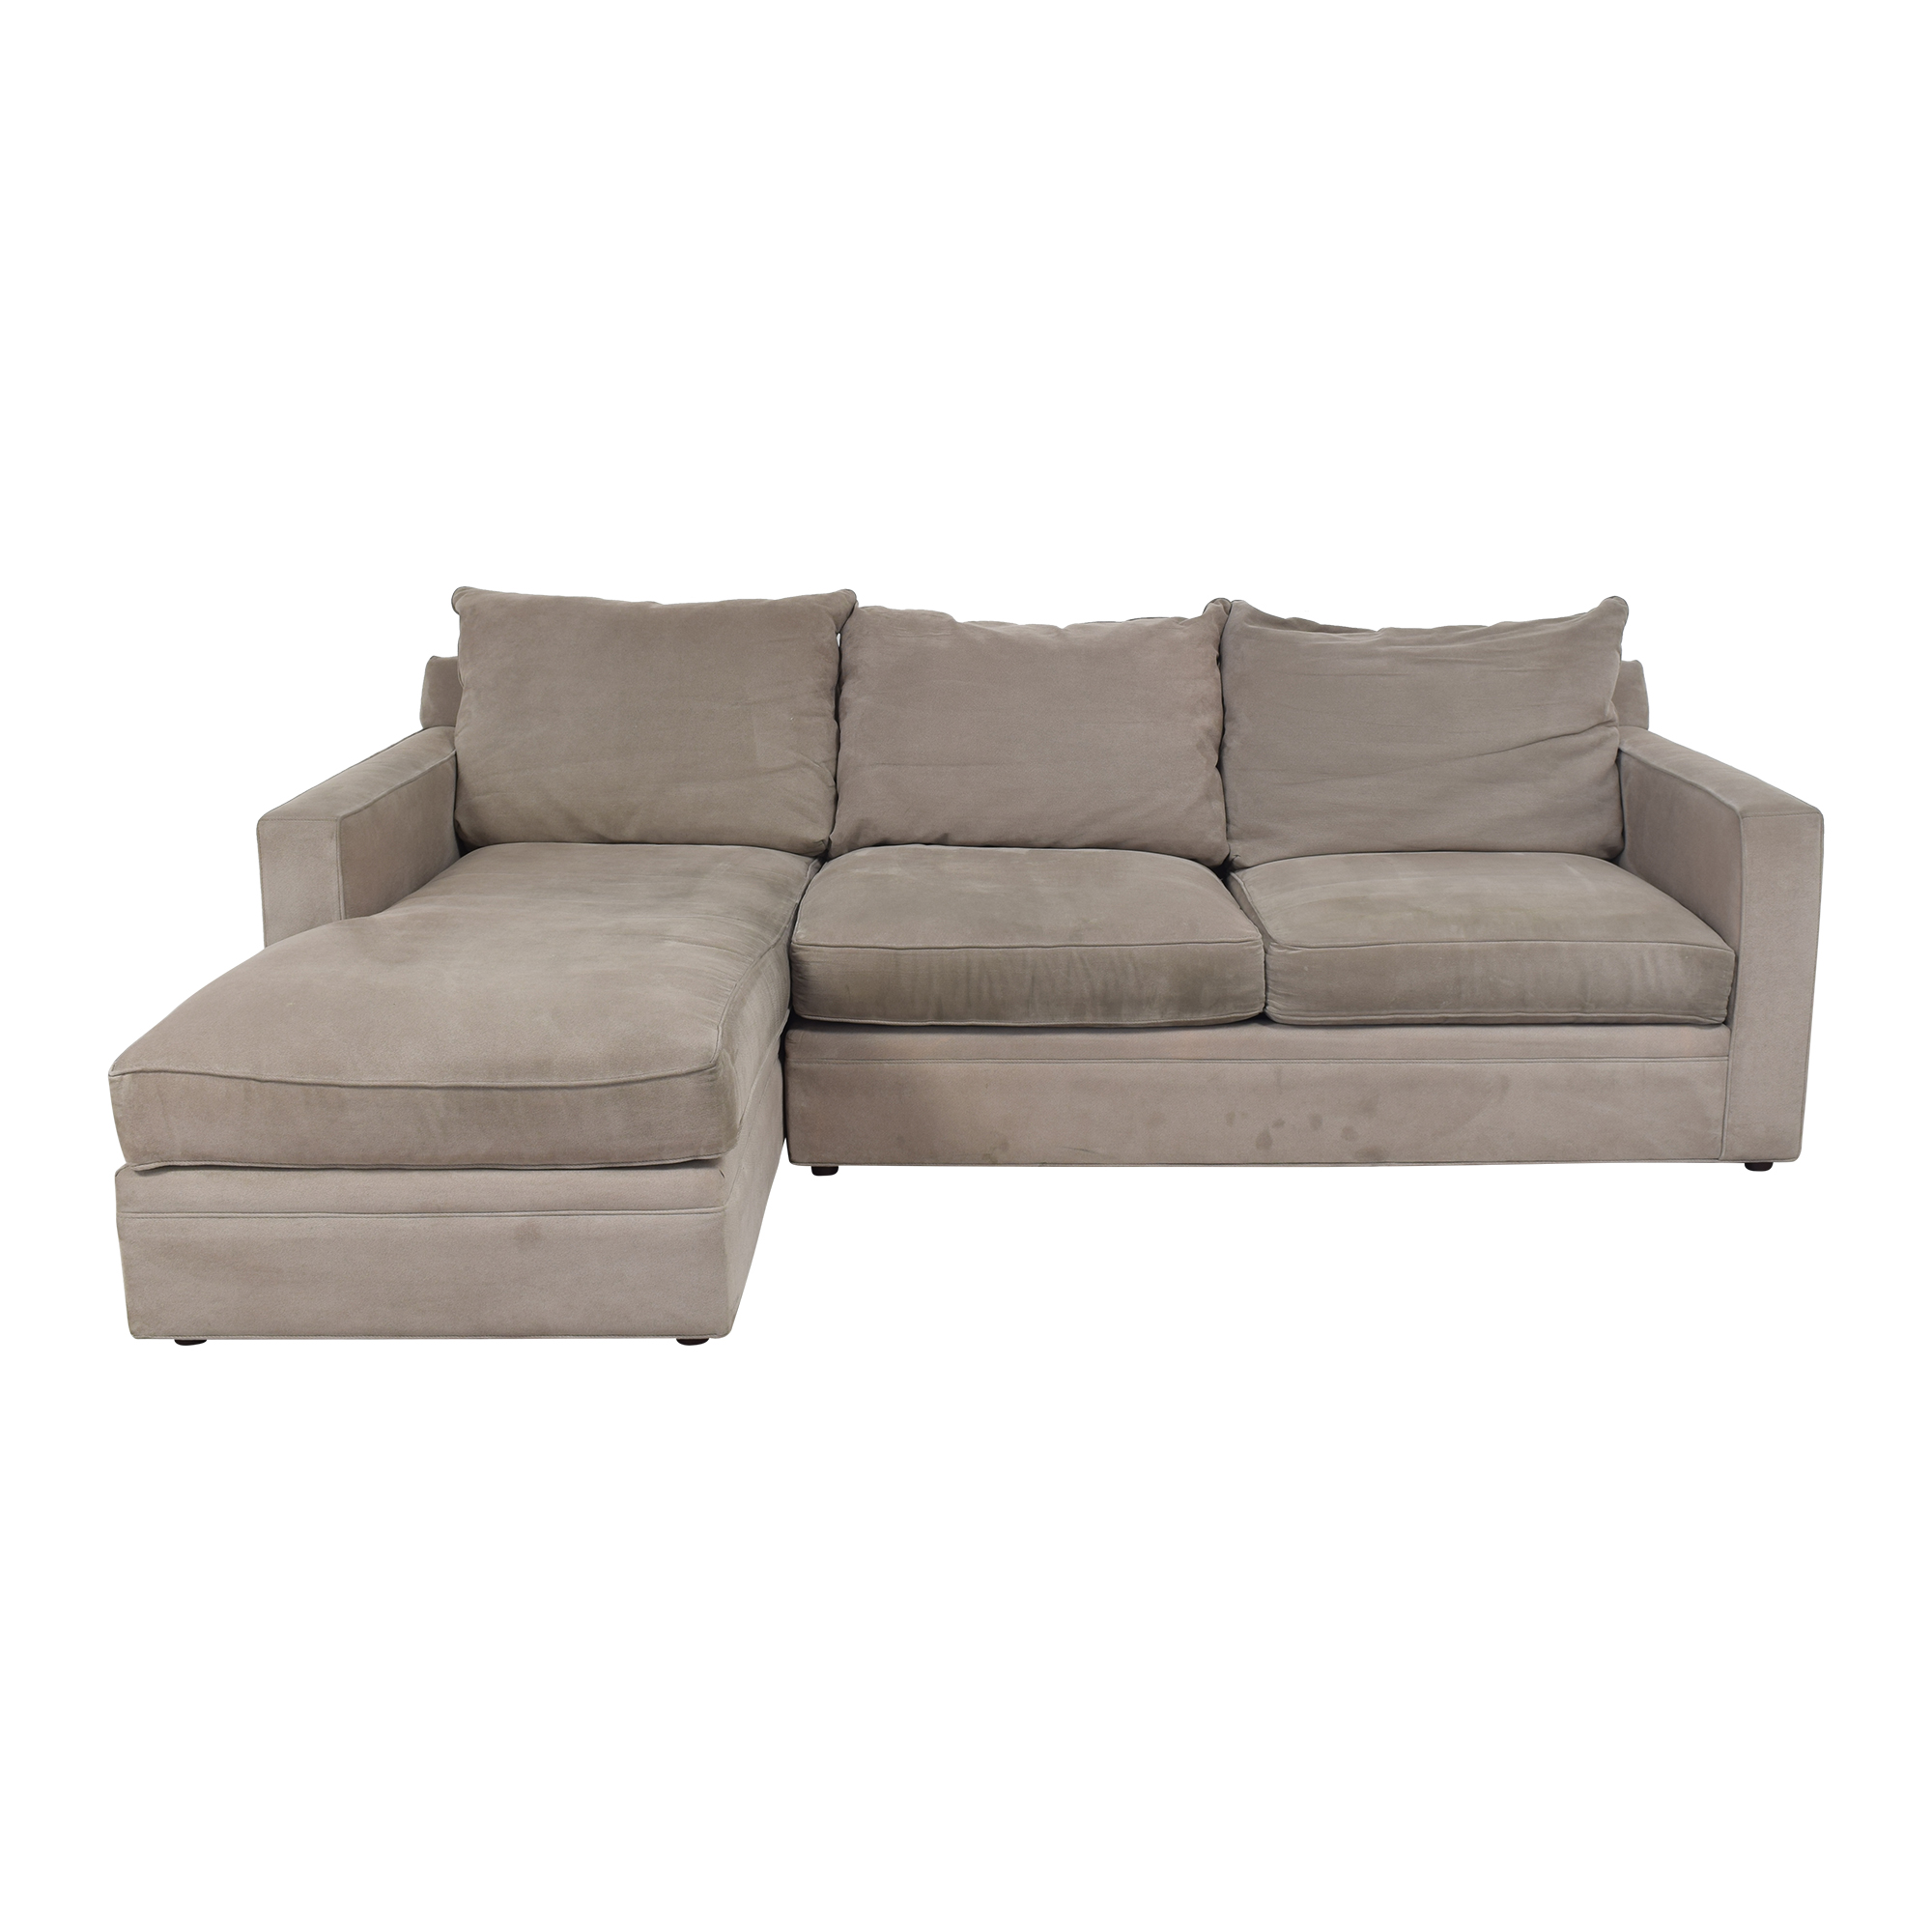 shop Room & Board Orson Sectional Sofa Room & Board Sectionals